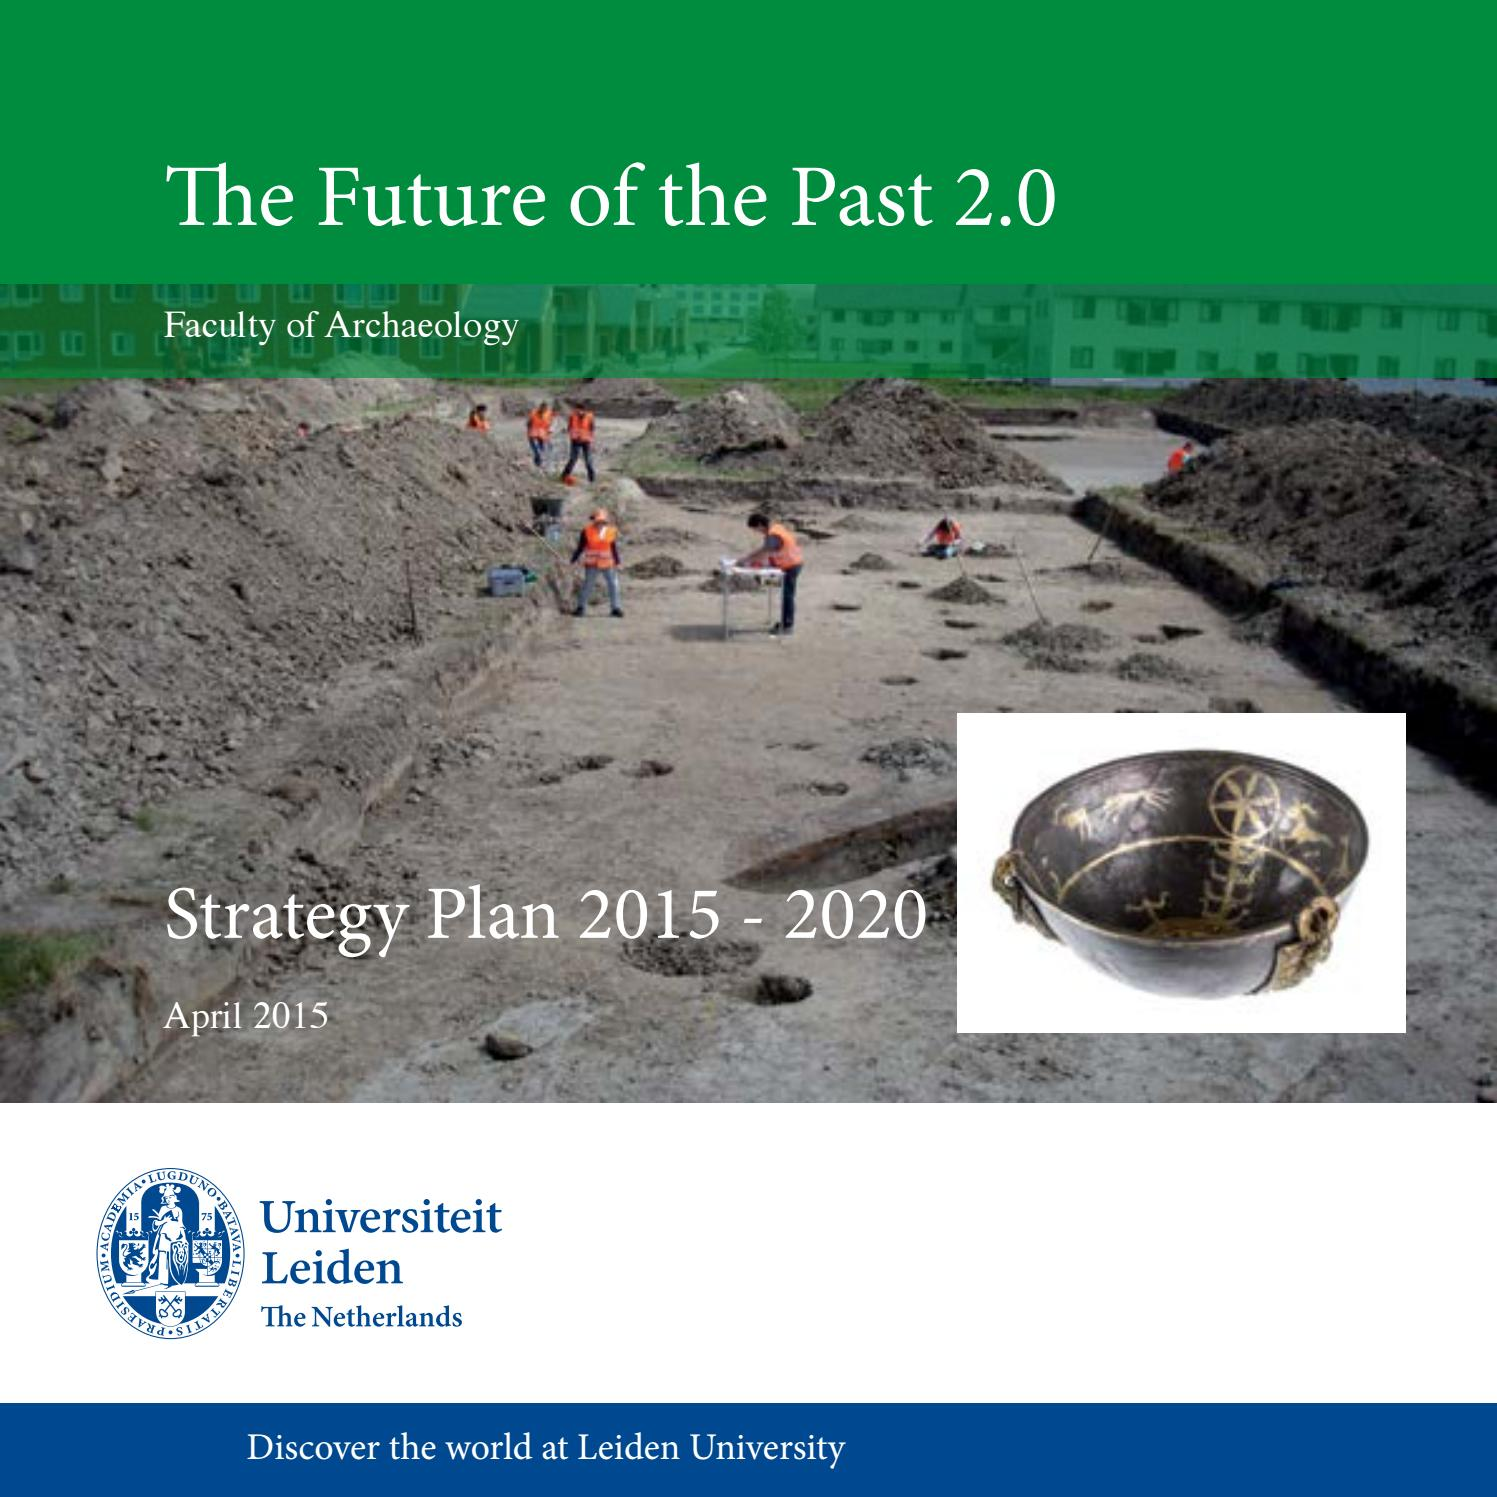 Strategic Plan 2015-2020, Faculty of Archaeology by Universiteit